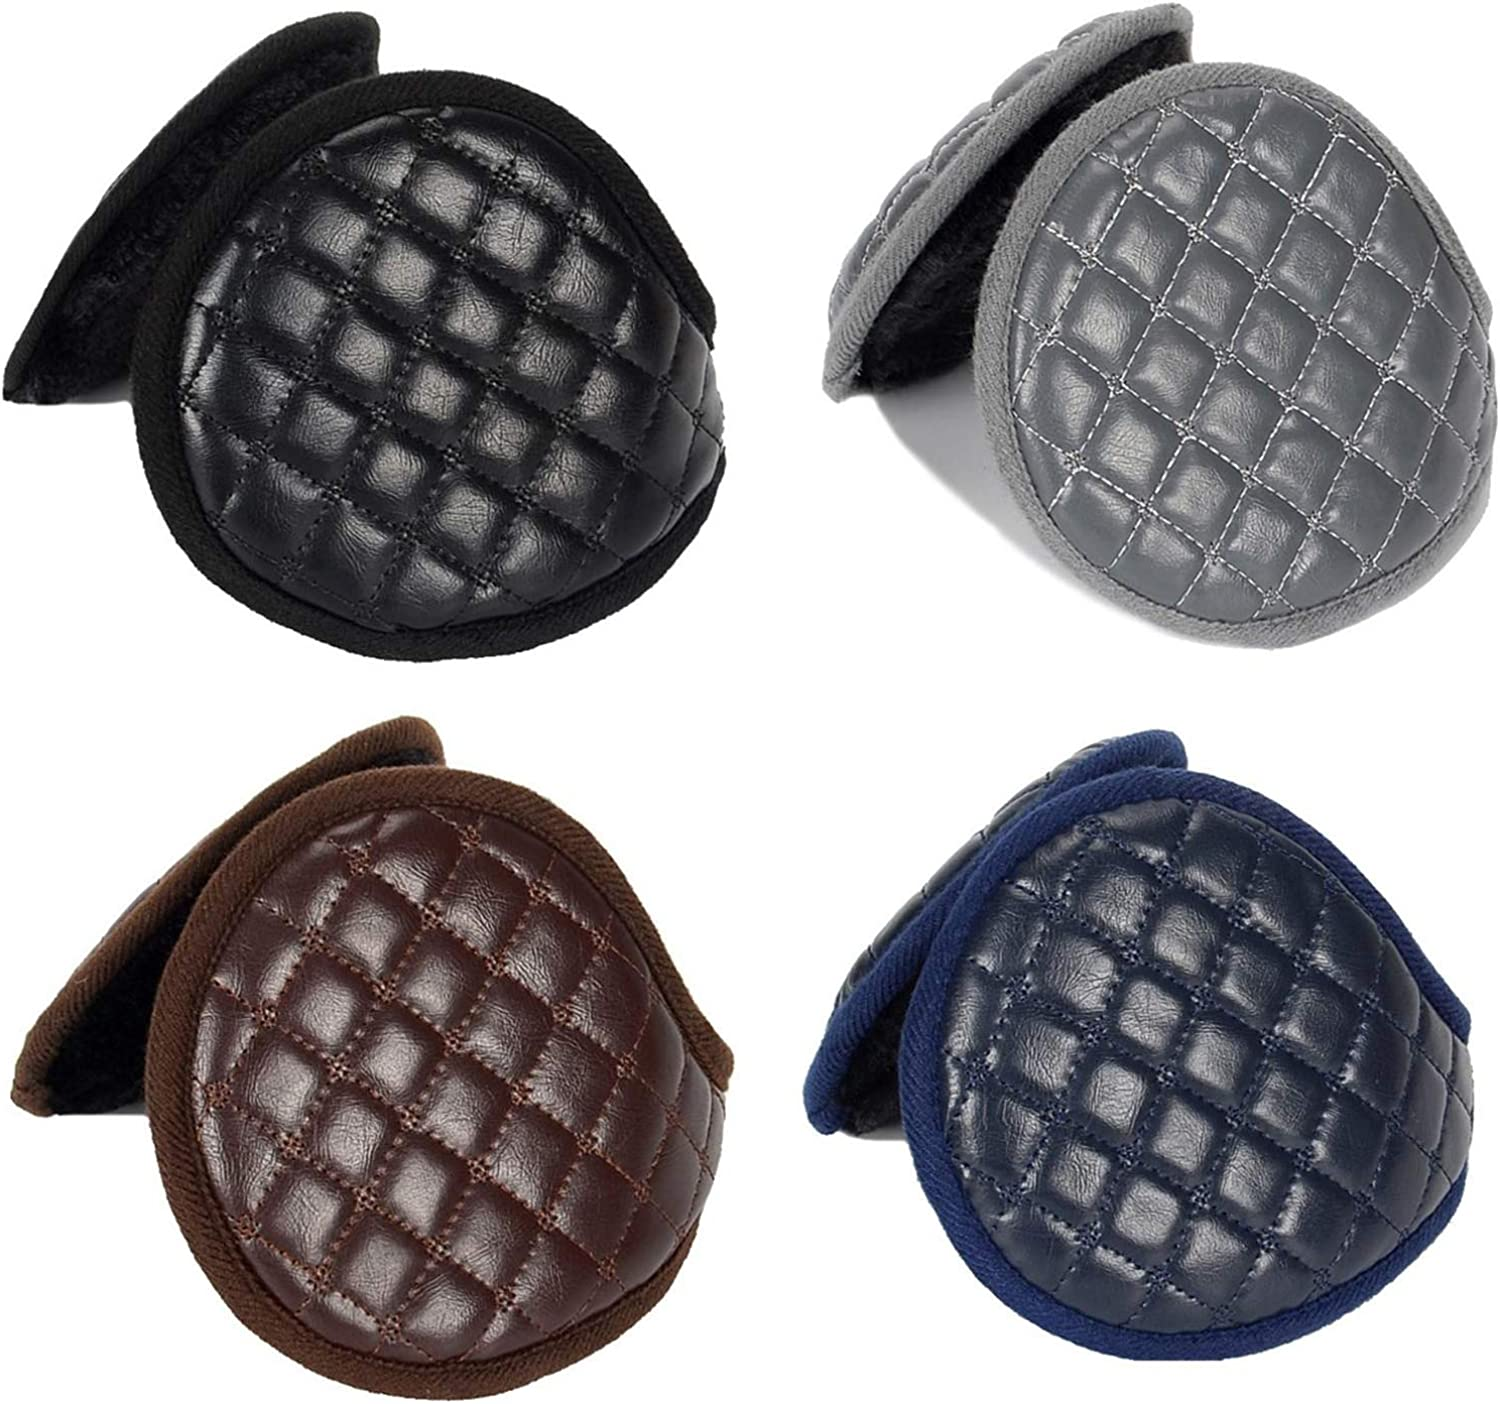 RONRONS 4 Pieces Men Warm Earmuffs Folded Plush Leather Padded Earmuff Winter Outdoor Sports Snowboarding Windproof Plushes Earflaps for Unisex Women, (Black, Coffee, Blue, Gray)